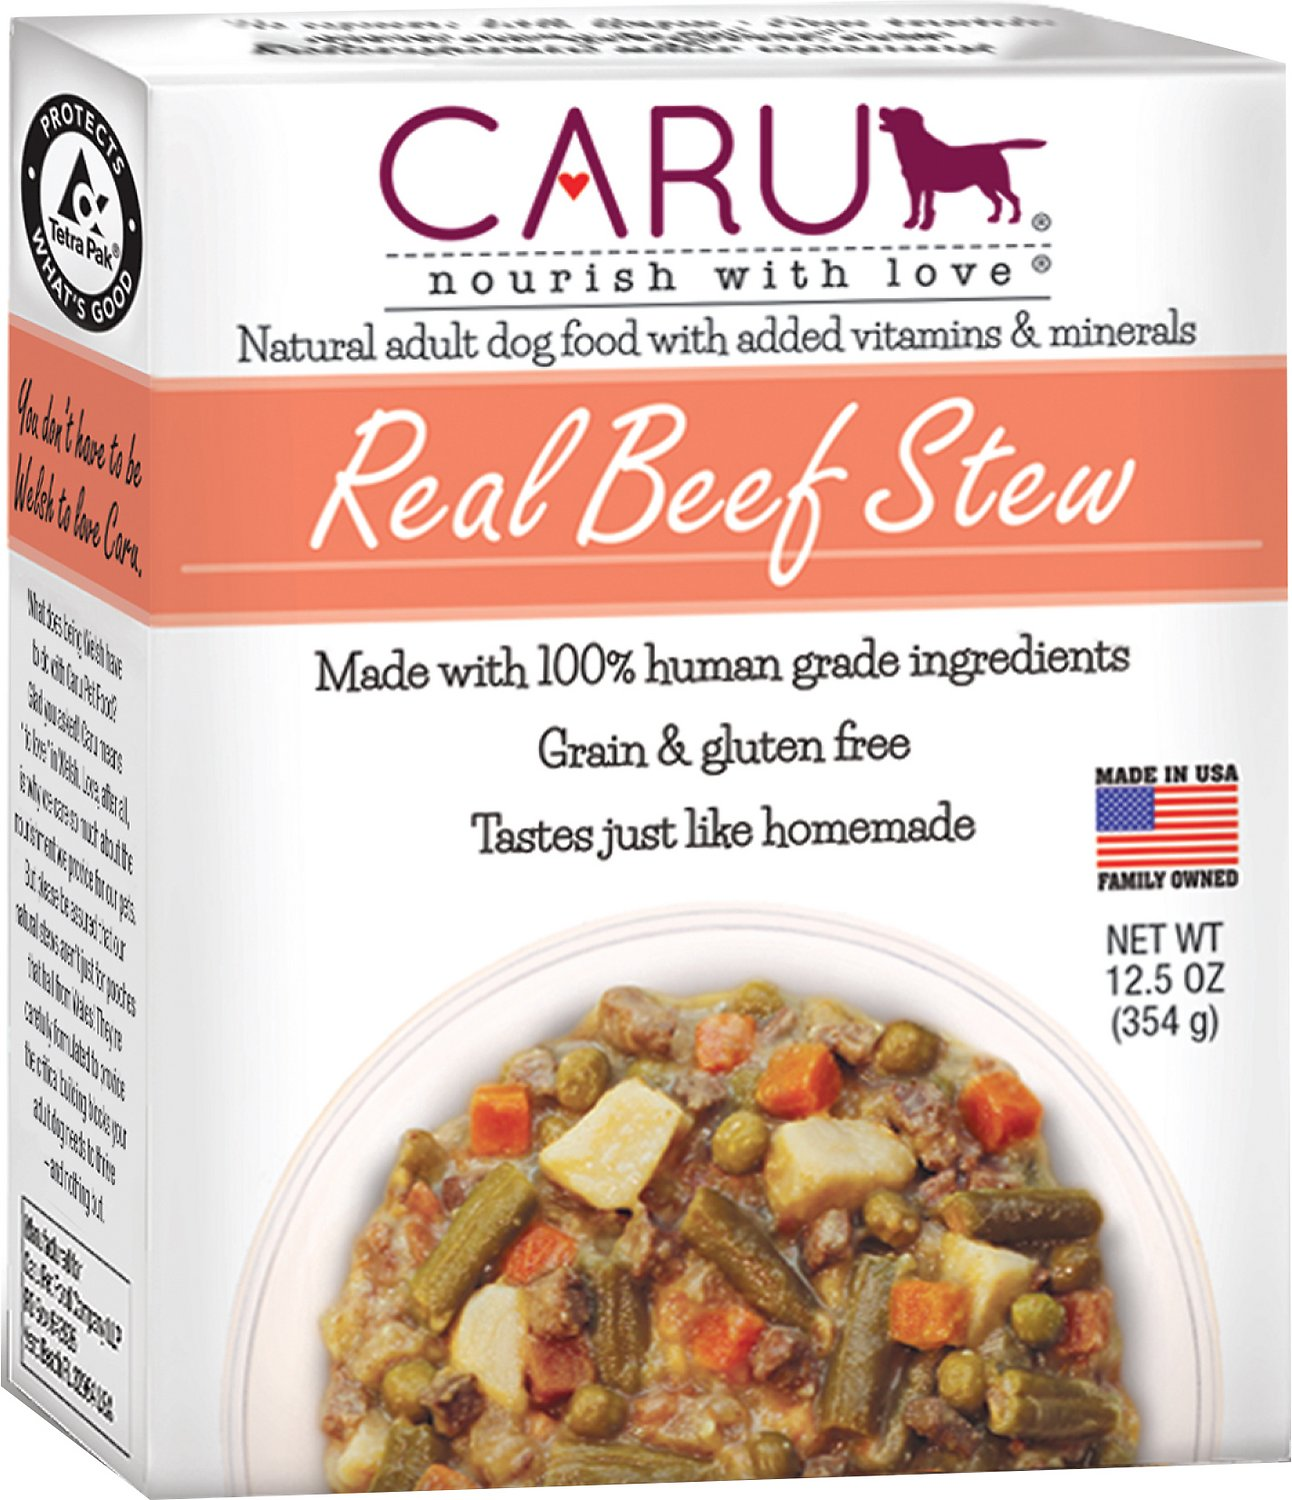 Caru Real Beef Stew Grain-Free Wet Dog Food